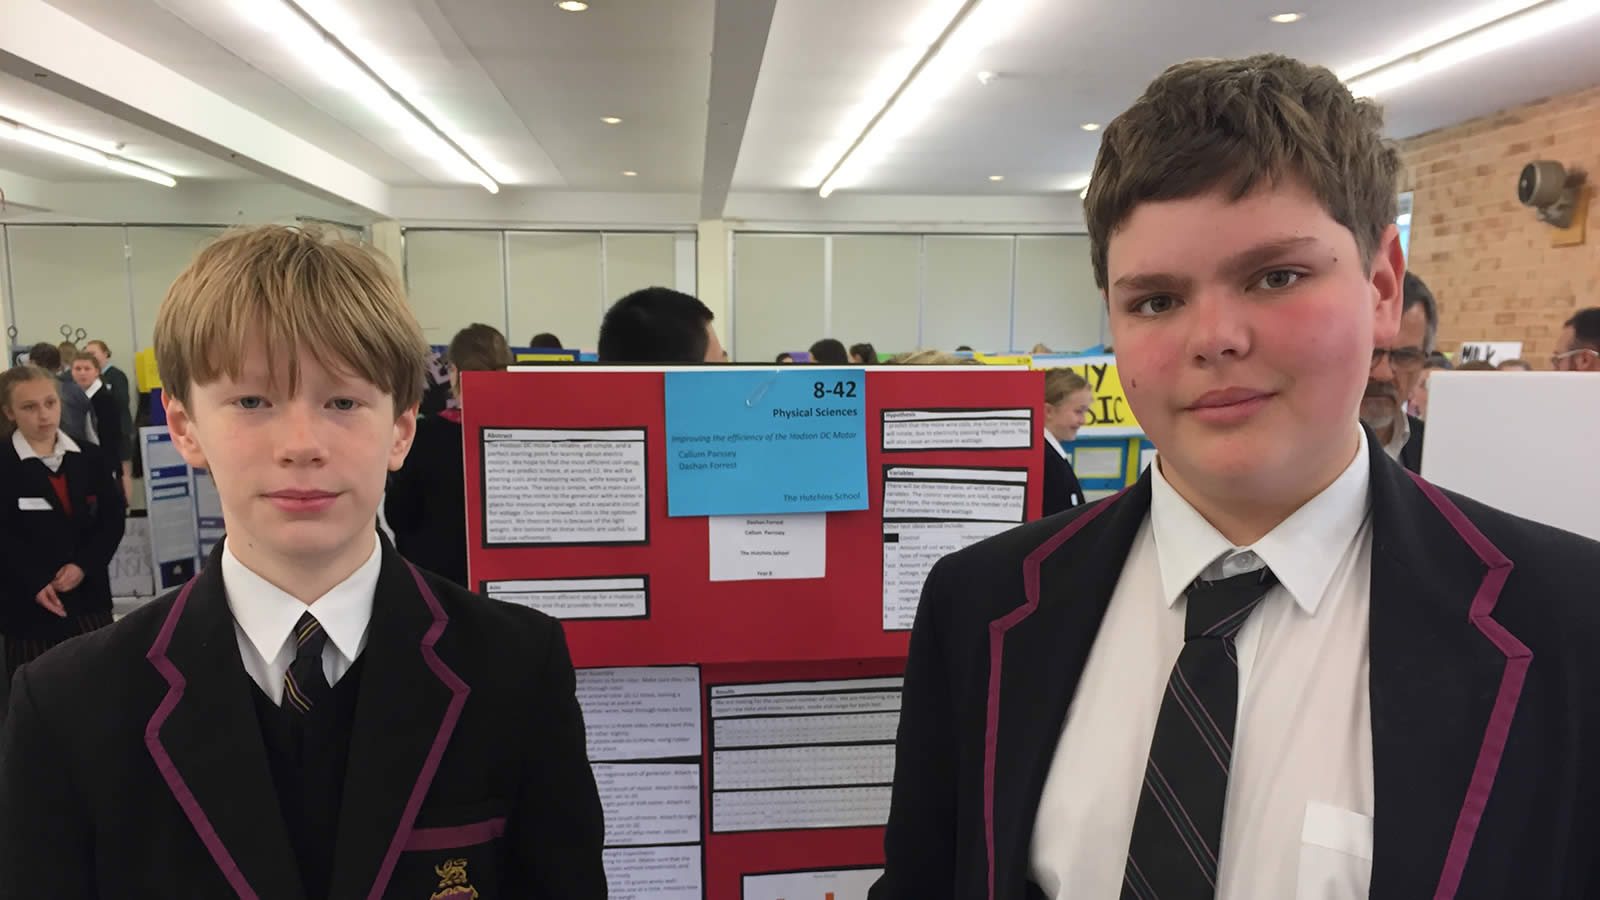 Year 8 students Callum Parssey and Dashan Forrest